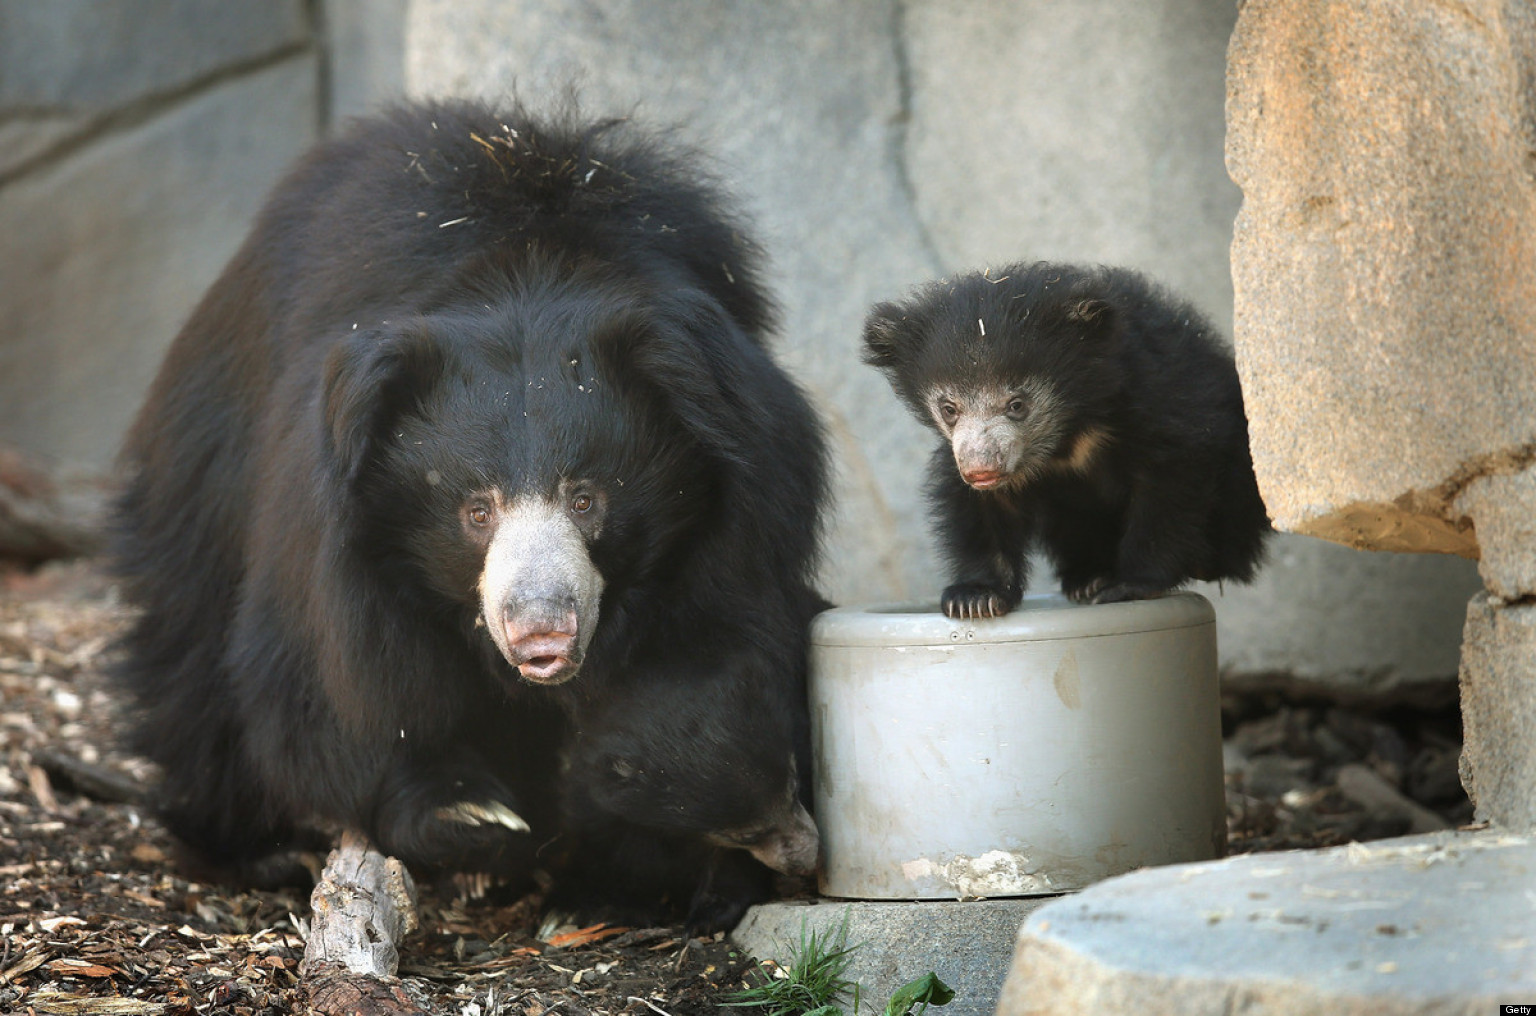 PHOTOS: So That's What A Baby Sloth Bear Looks Like...